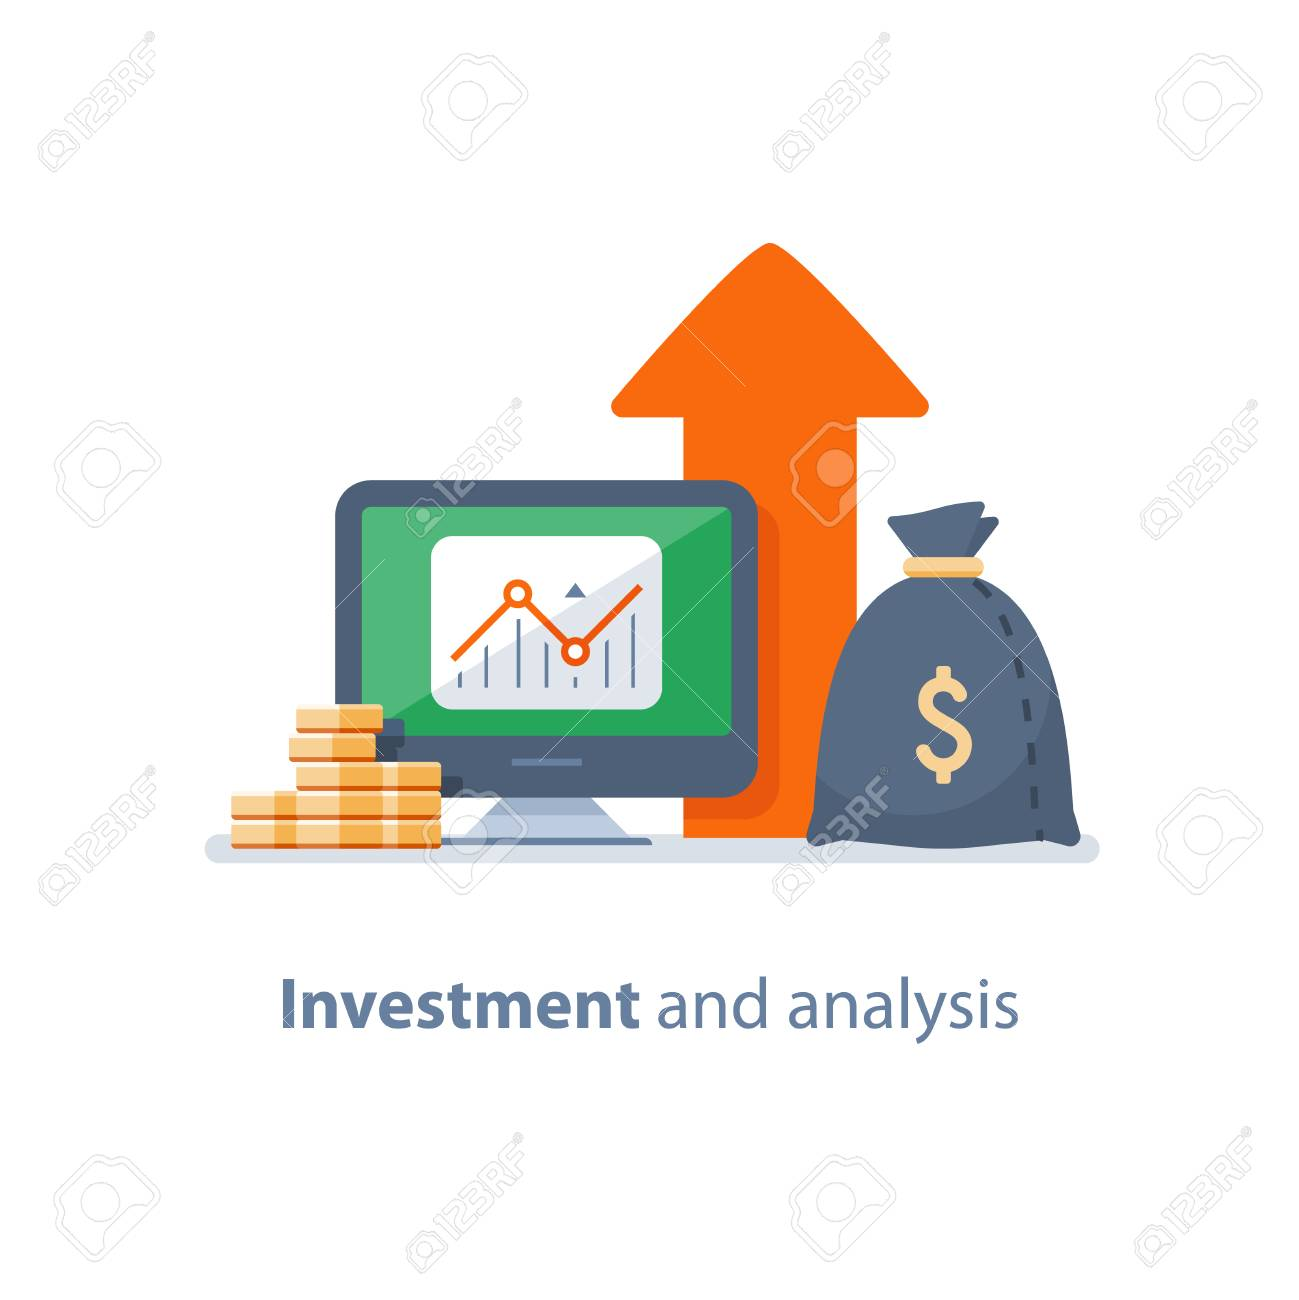 Investment strategy, financial analysis, hedge fund, venture business, mutual fund, trust management, interest rate, capital growth, data review on desktop, stock market and exchange, accountancy icon - 101172759